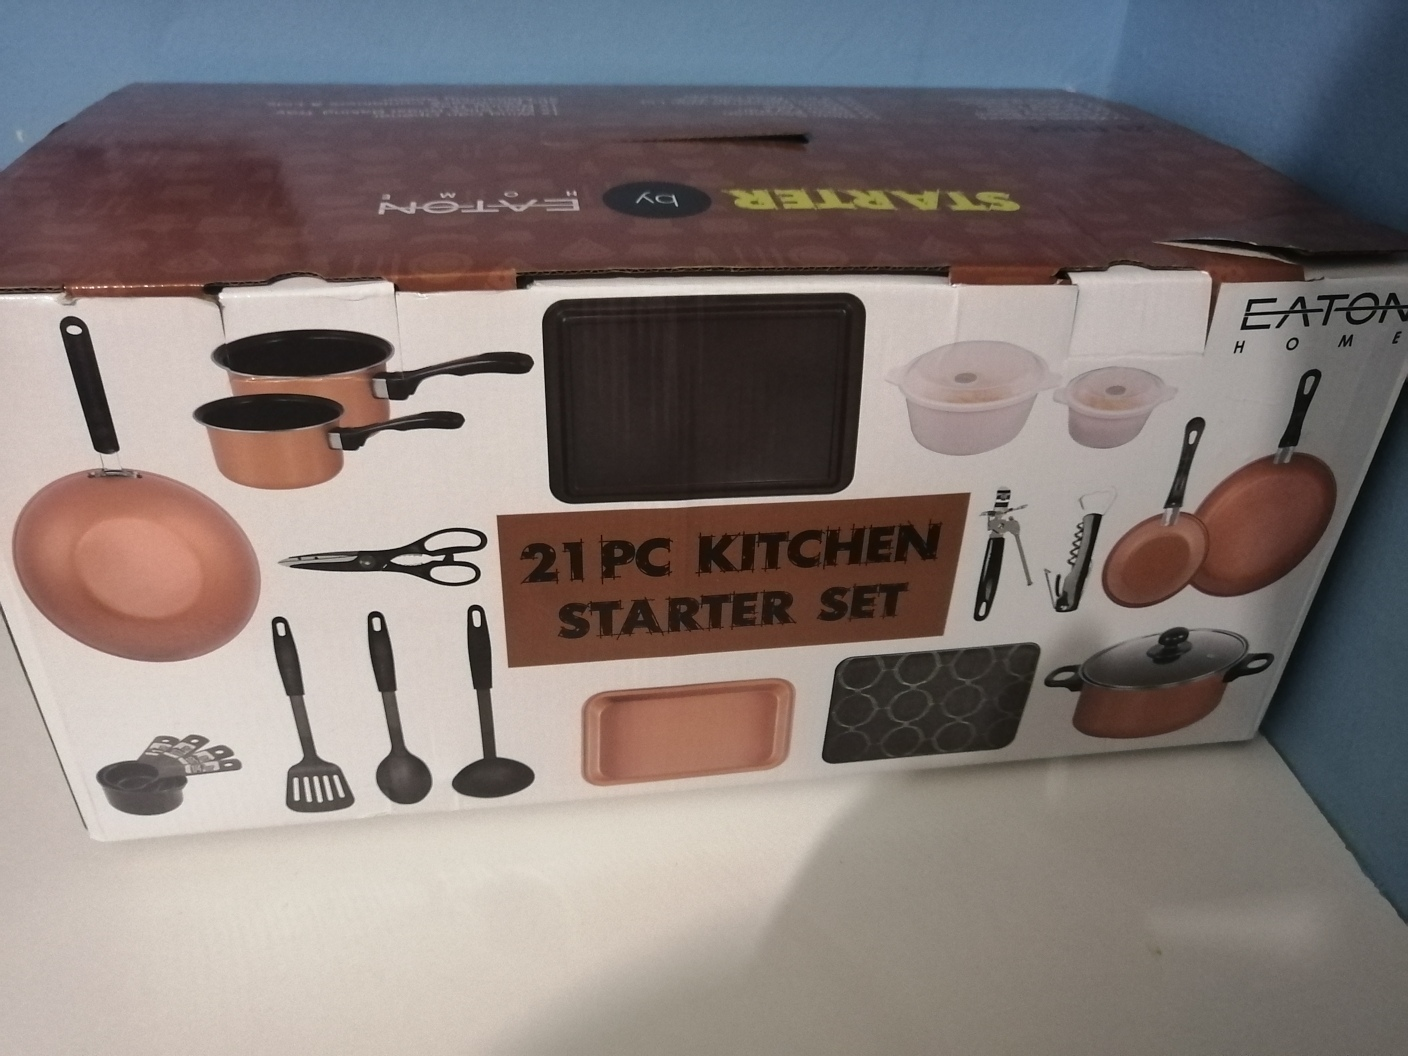 21 Piece kithcen starter kit